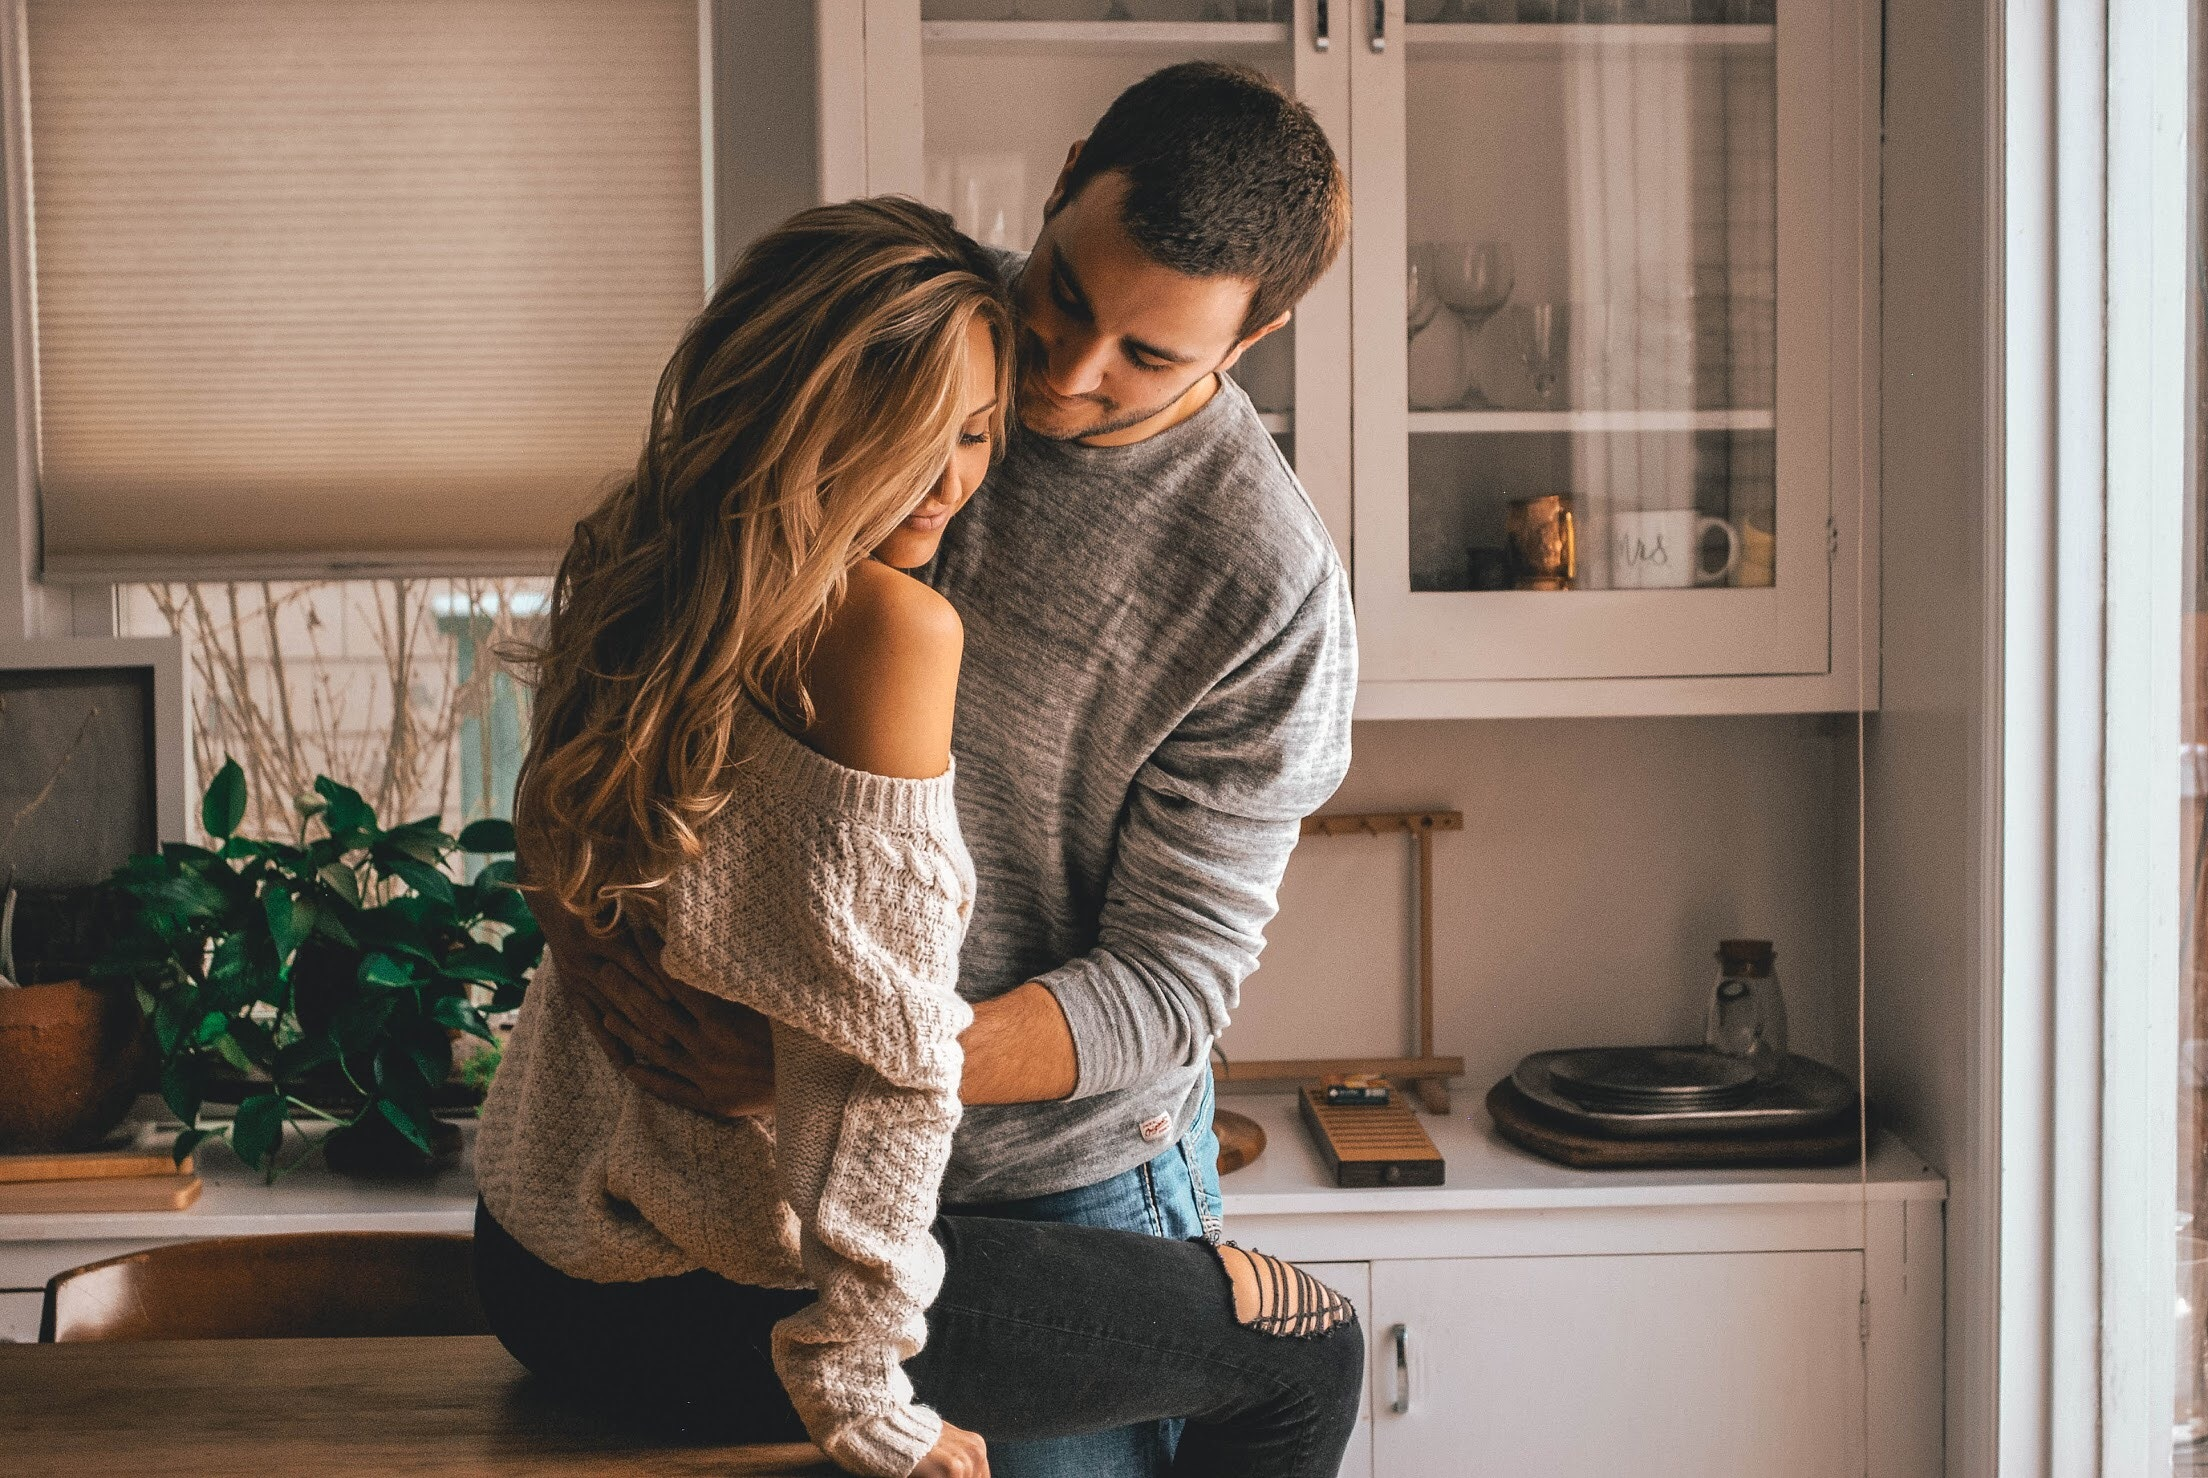 10 Types Of Hugs That Says A Lot About Your Relationship